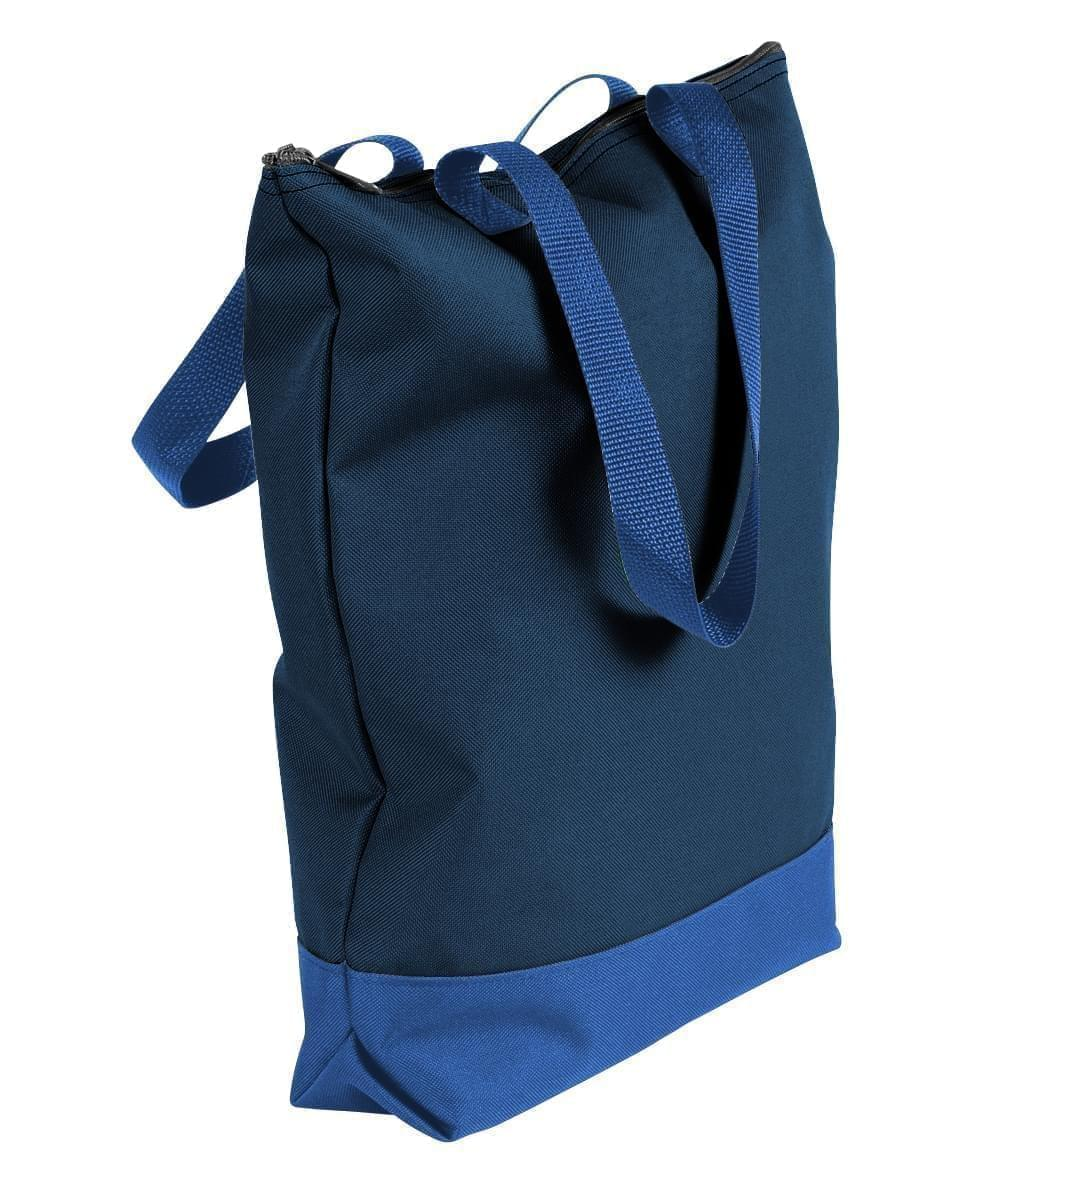 USA Made Canvas Portfolio Tote Bags, Navy-Royal Blue, 1AAMX1UAC3